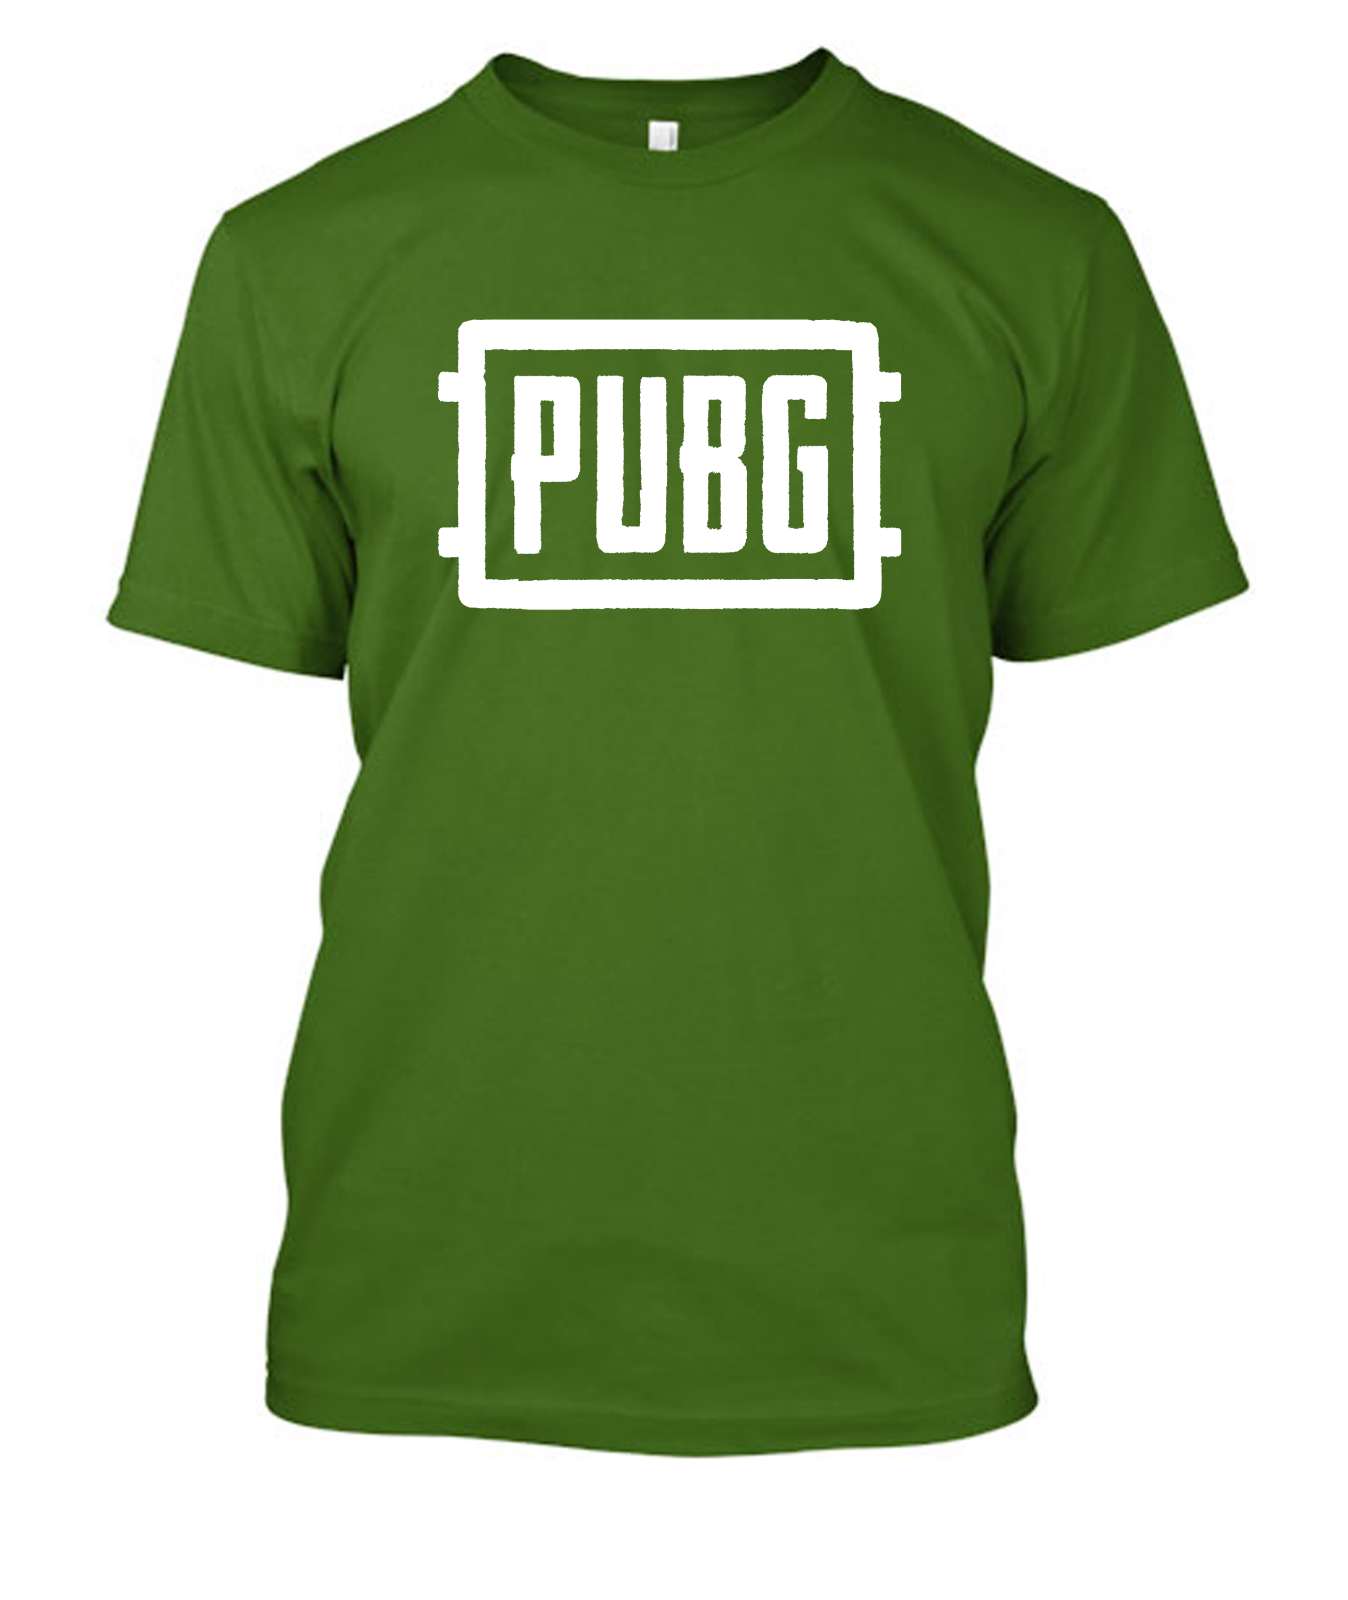 Player Unknown Battlegrounds Pubg Gaming T Shirt Tee Tshirt Vinyl Print New Shirts Funny Tops Uni In From Men S